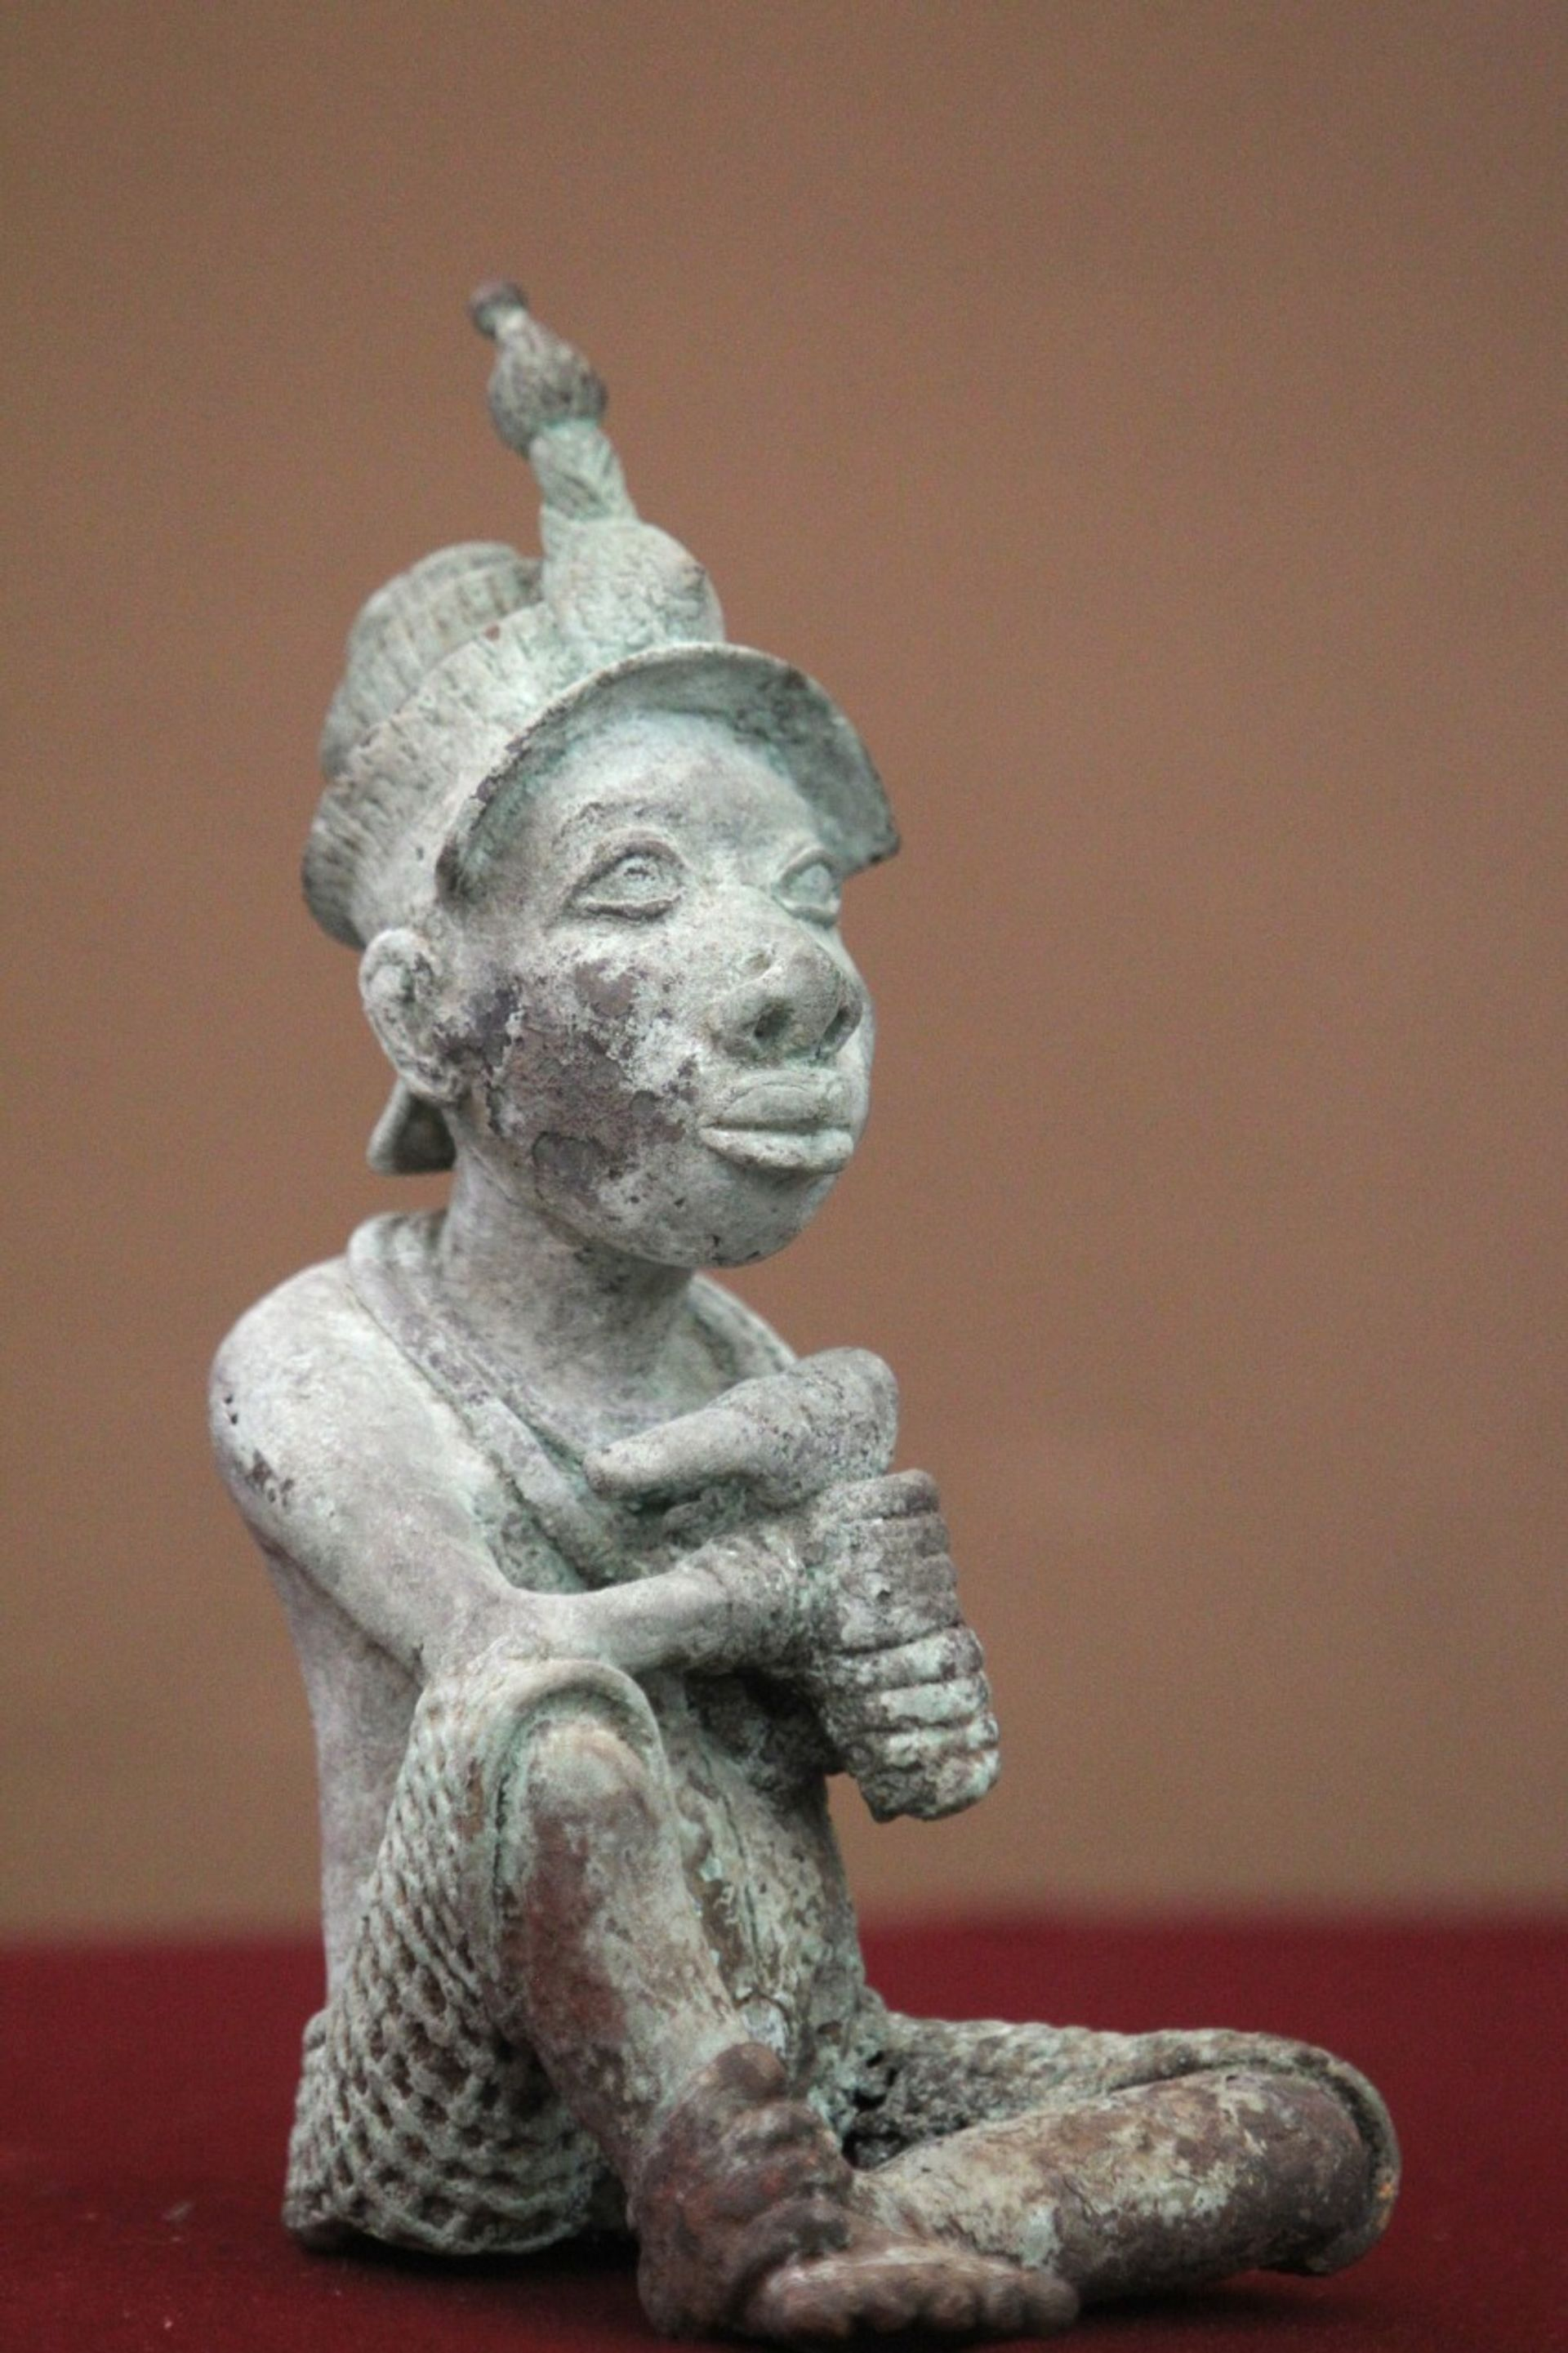 The bronze Ife sculpture that was recently returned from Mexico to Nigeria is believed to be a fake Courtesy of the Mexican ministries of foreign affairs and culture